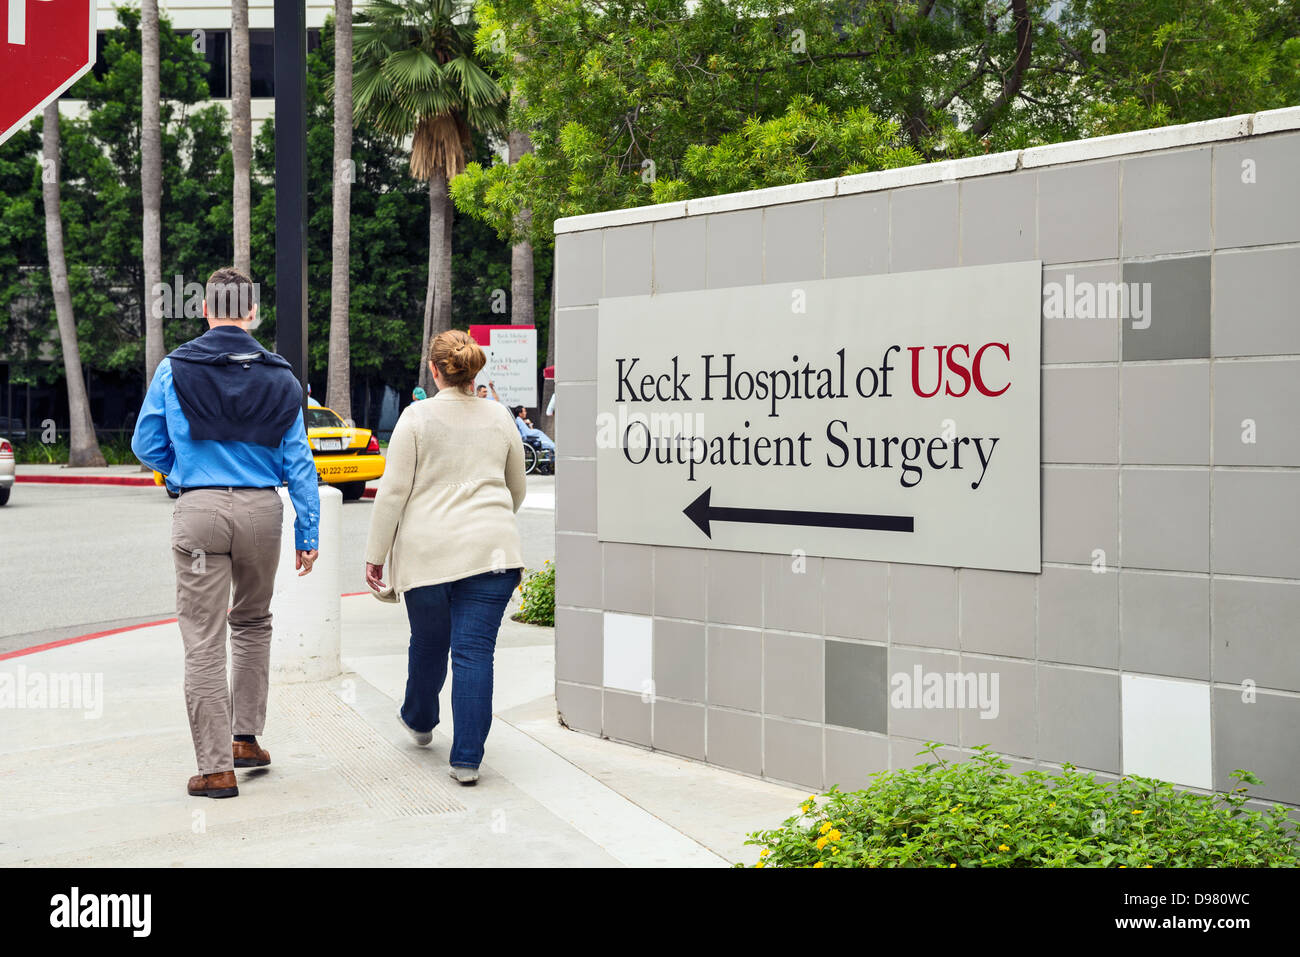 Keck Medical Center of the University of Southern California